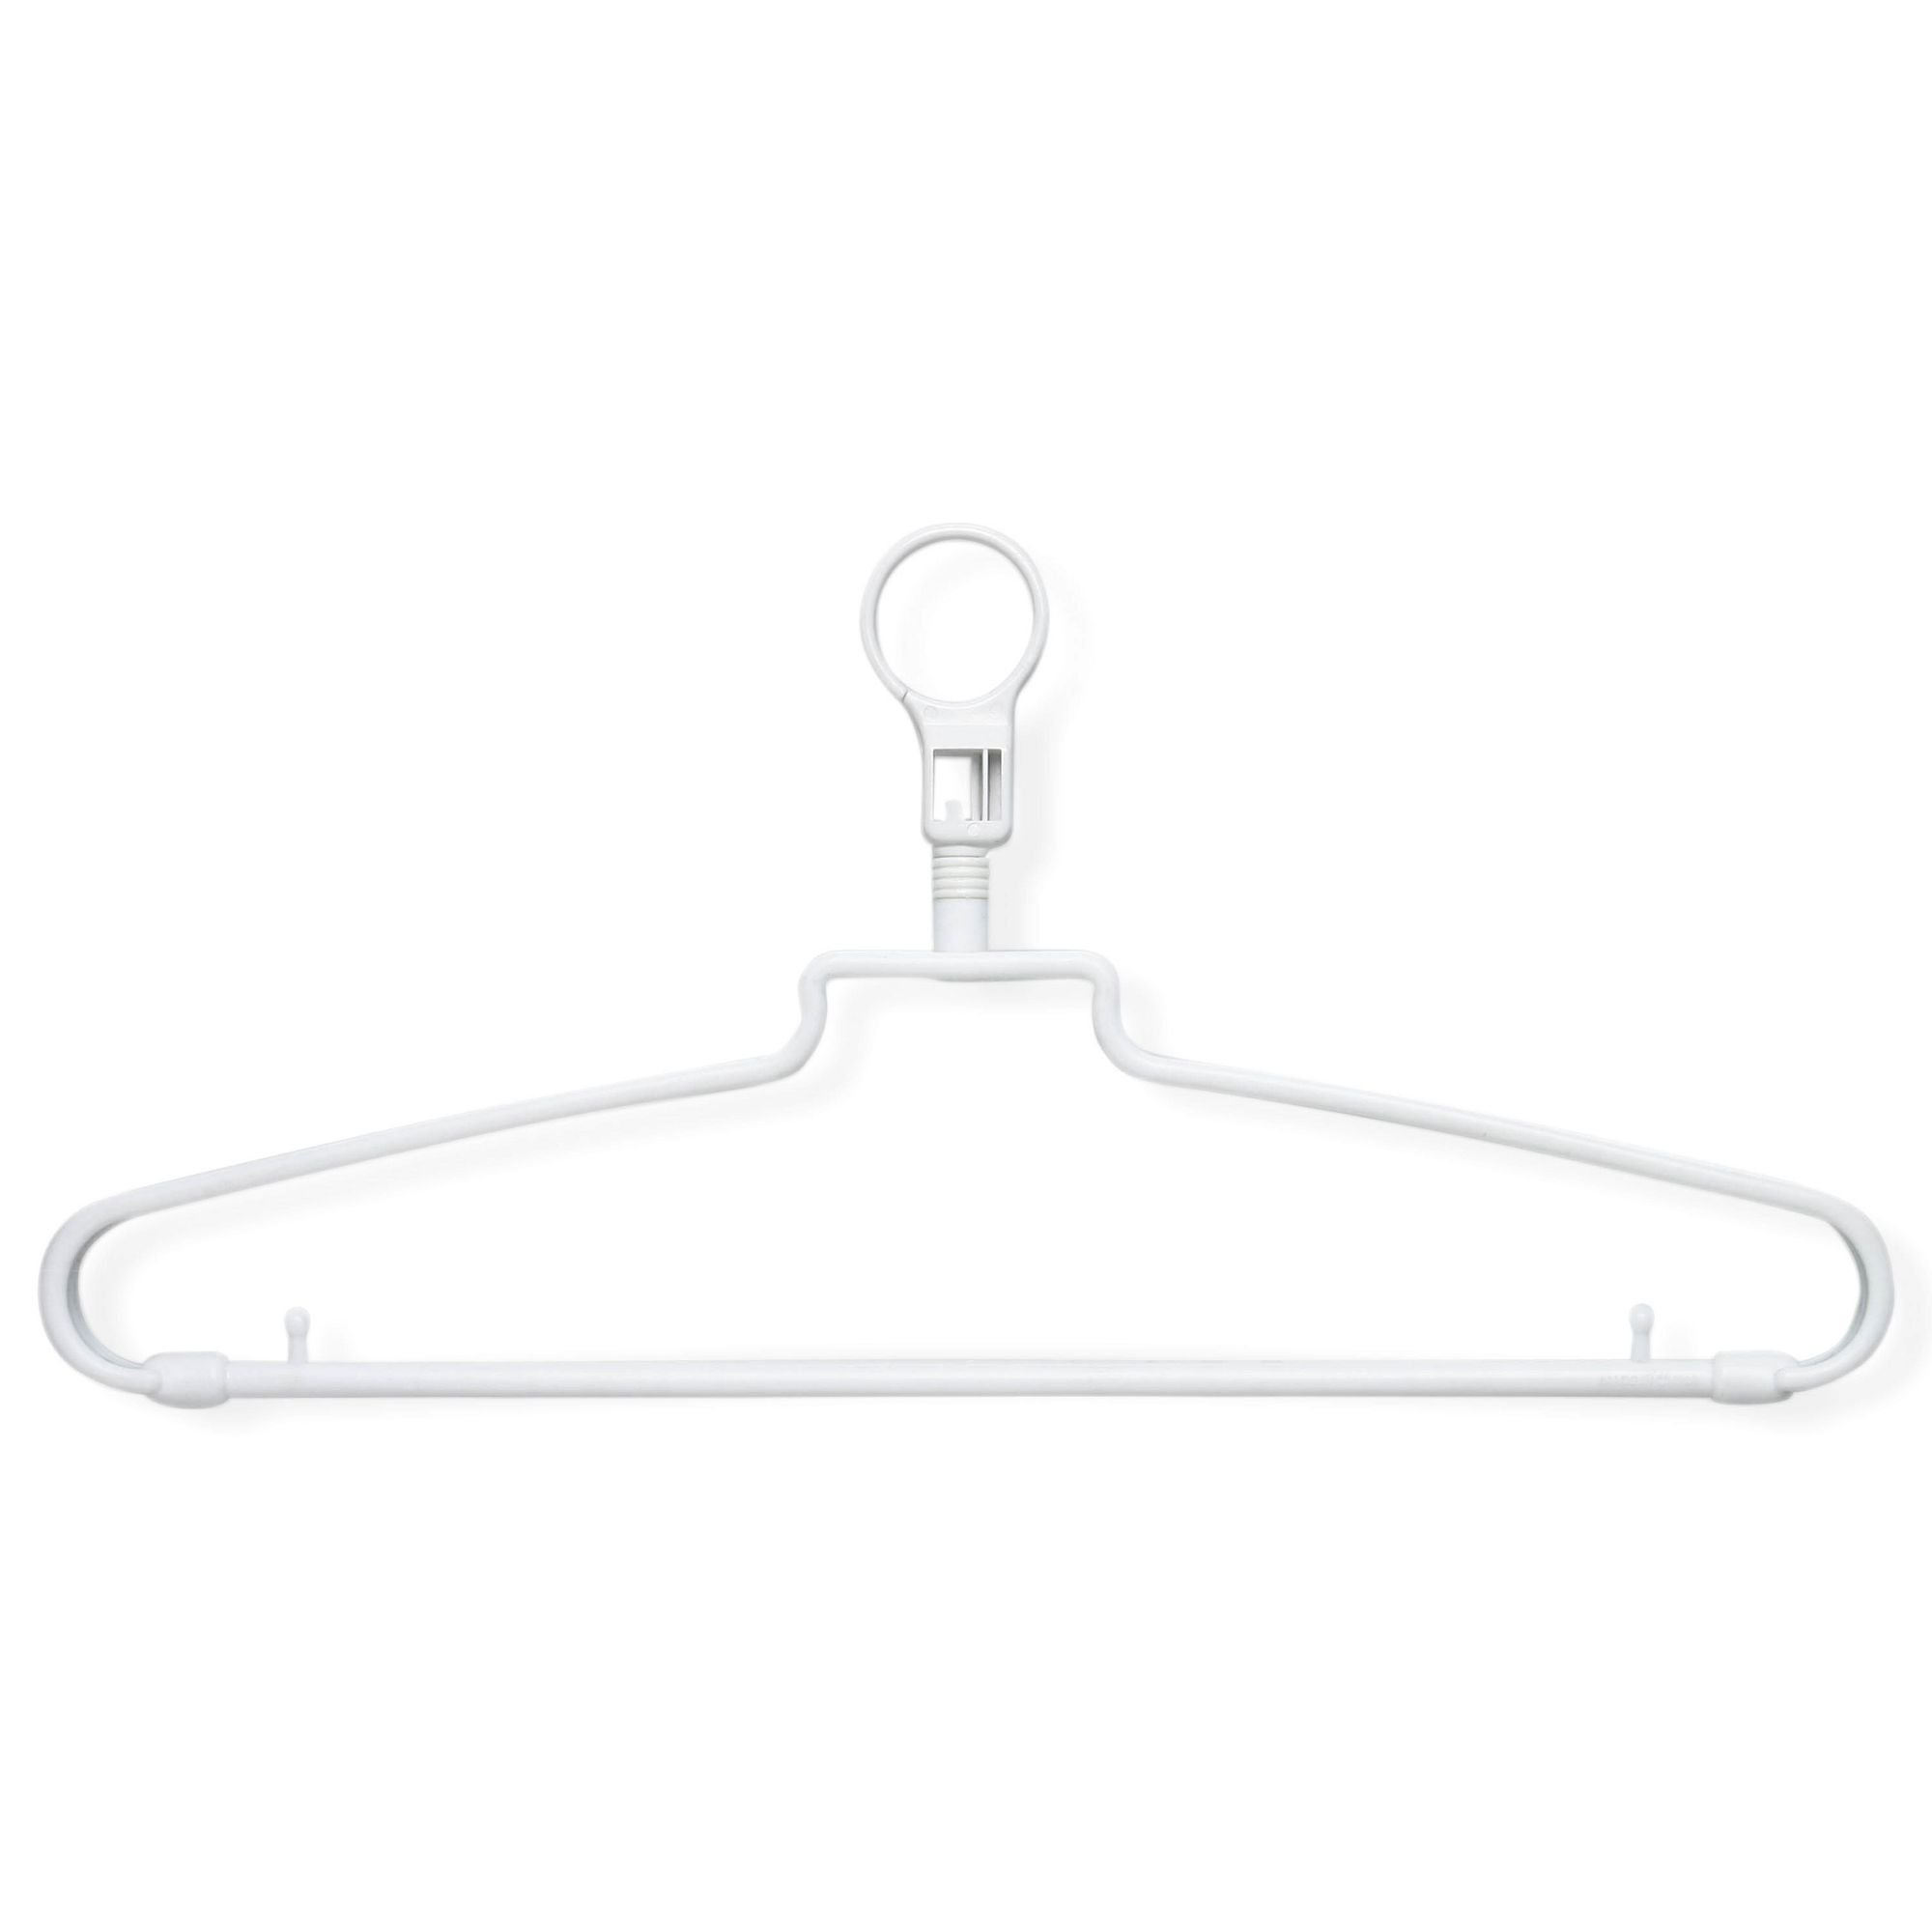 Honey-Can-Do Hotel Hangers with Security Loop (72 Pack)